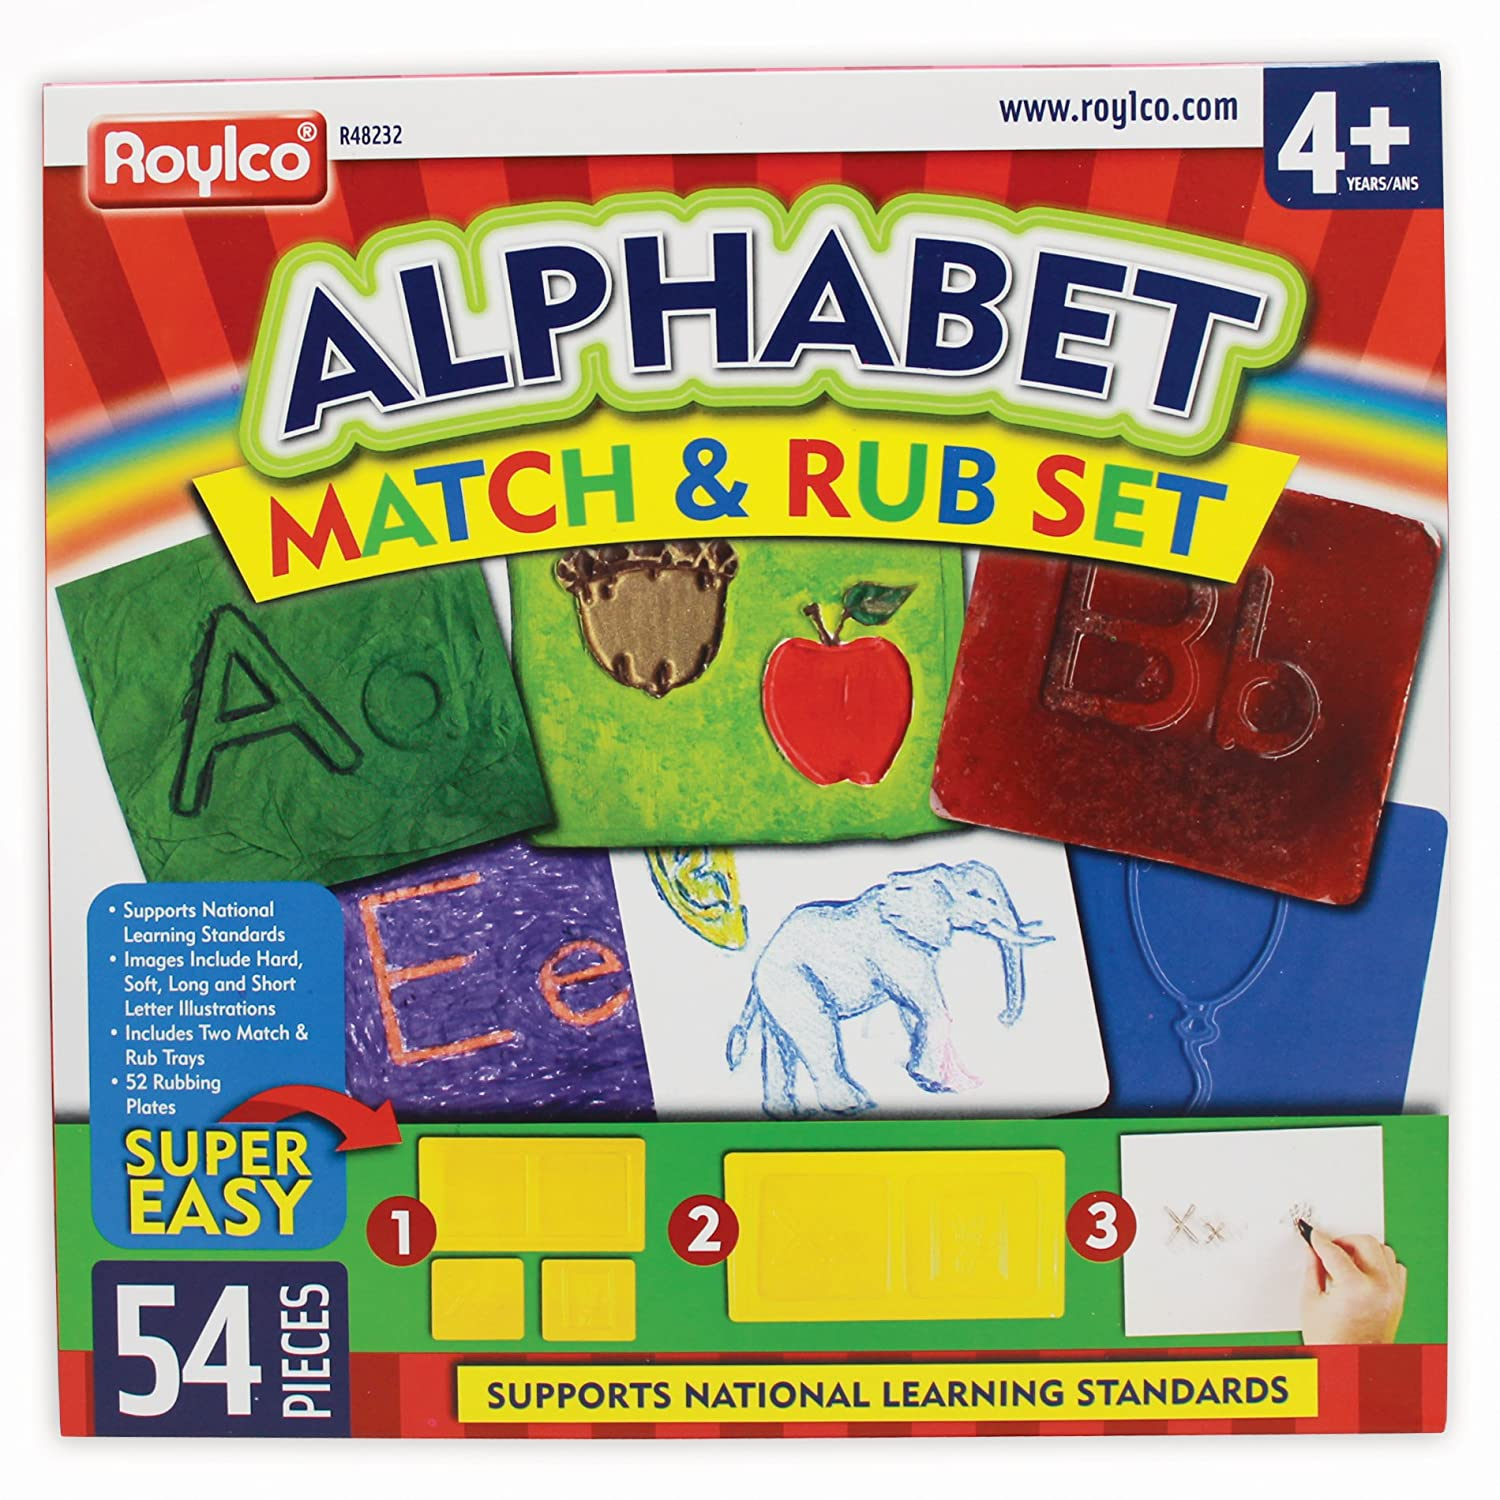 Roylco Alphabet Match & Rub Set Rubbing Plates R-48232